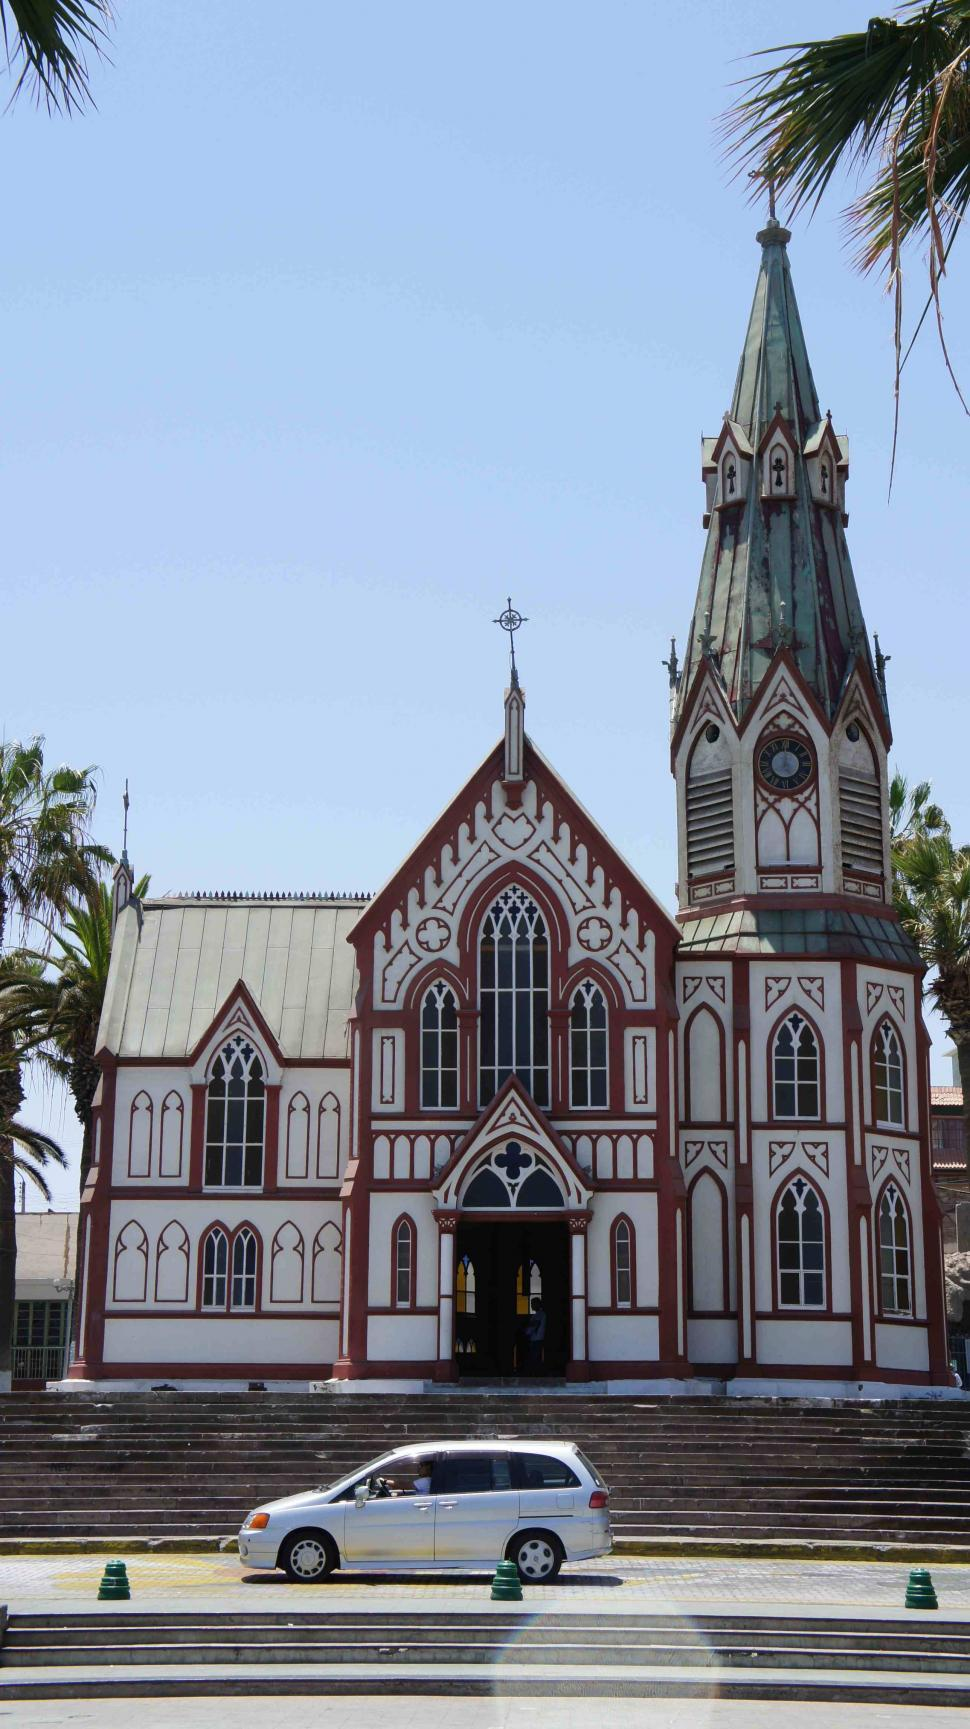 Download Free Stock HD Photo of Beautiful Church in South America Online